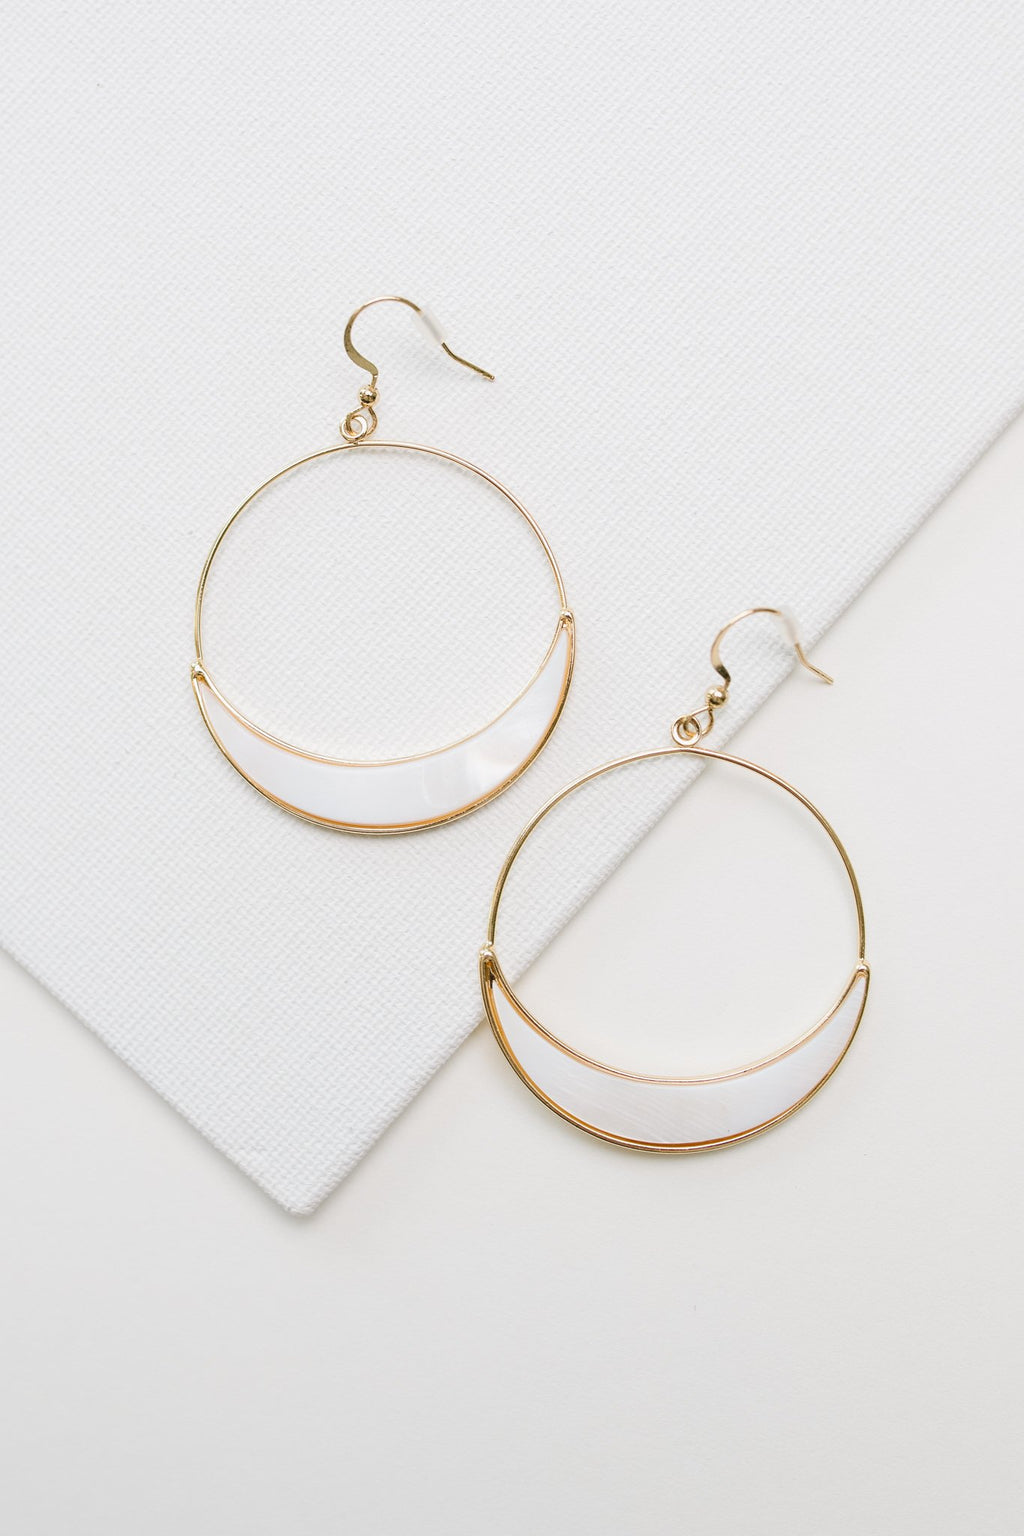 Hooked On Hoops Earrings